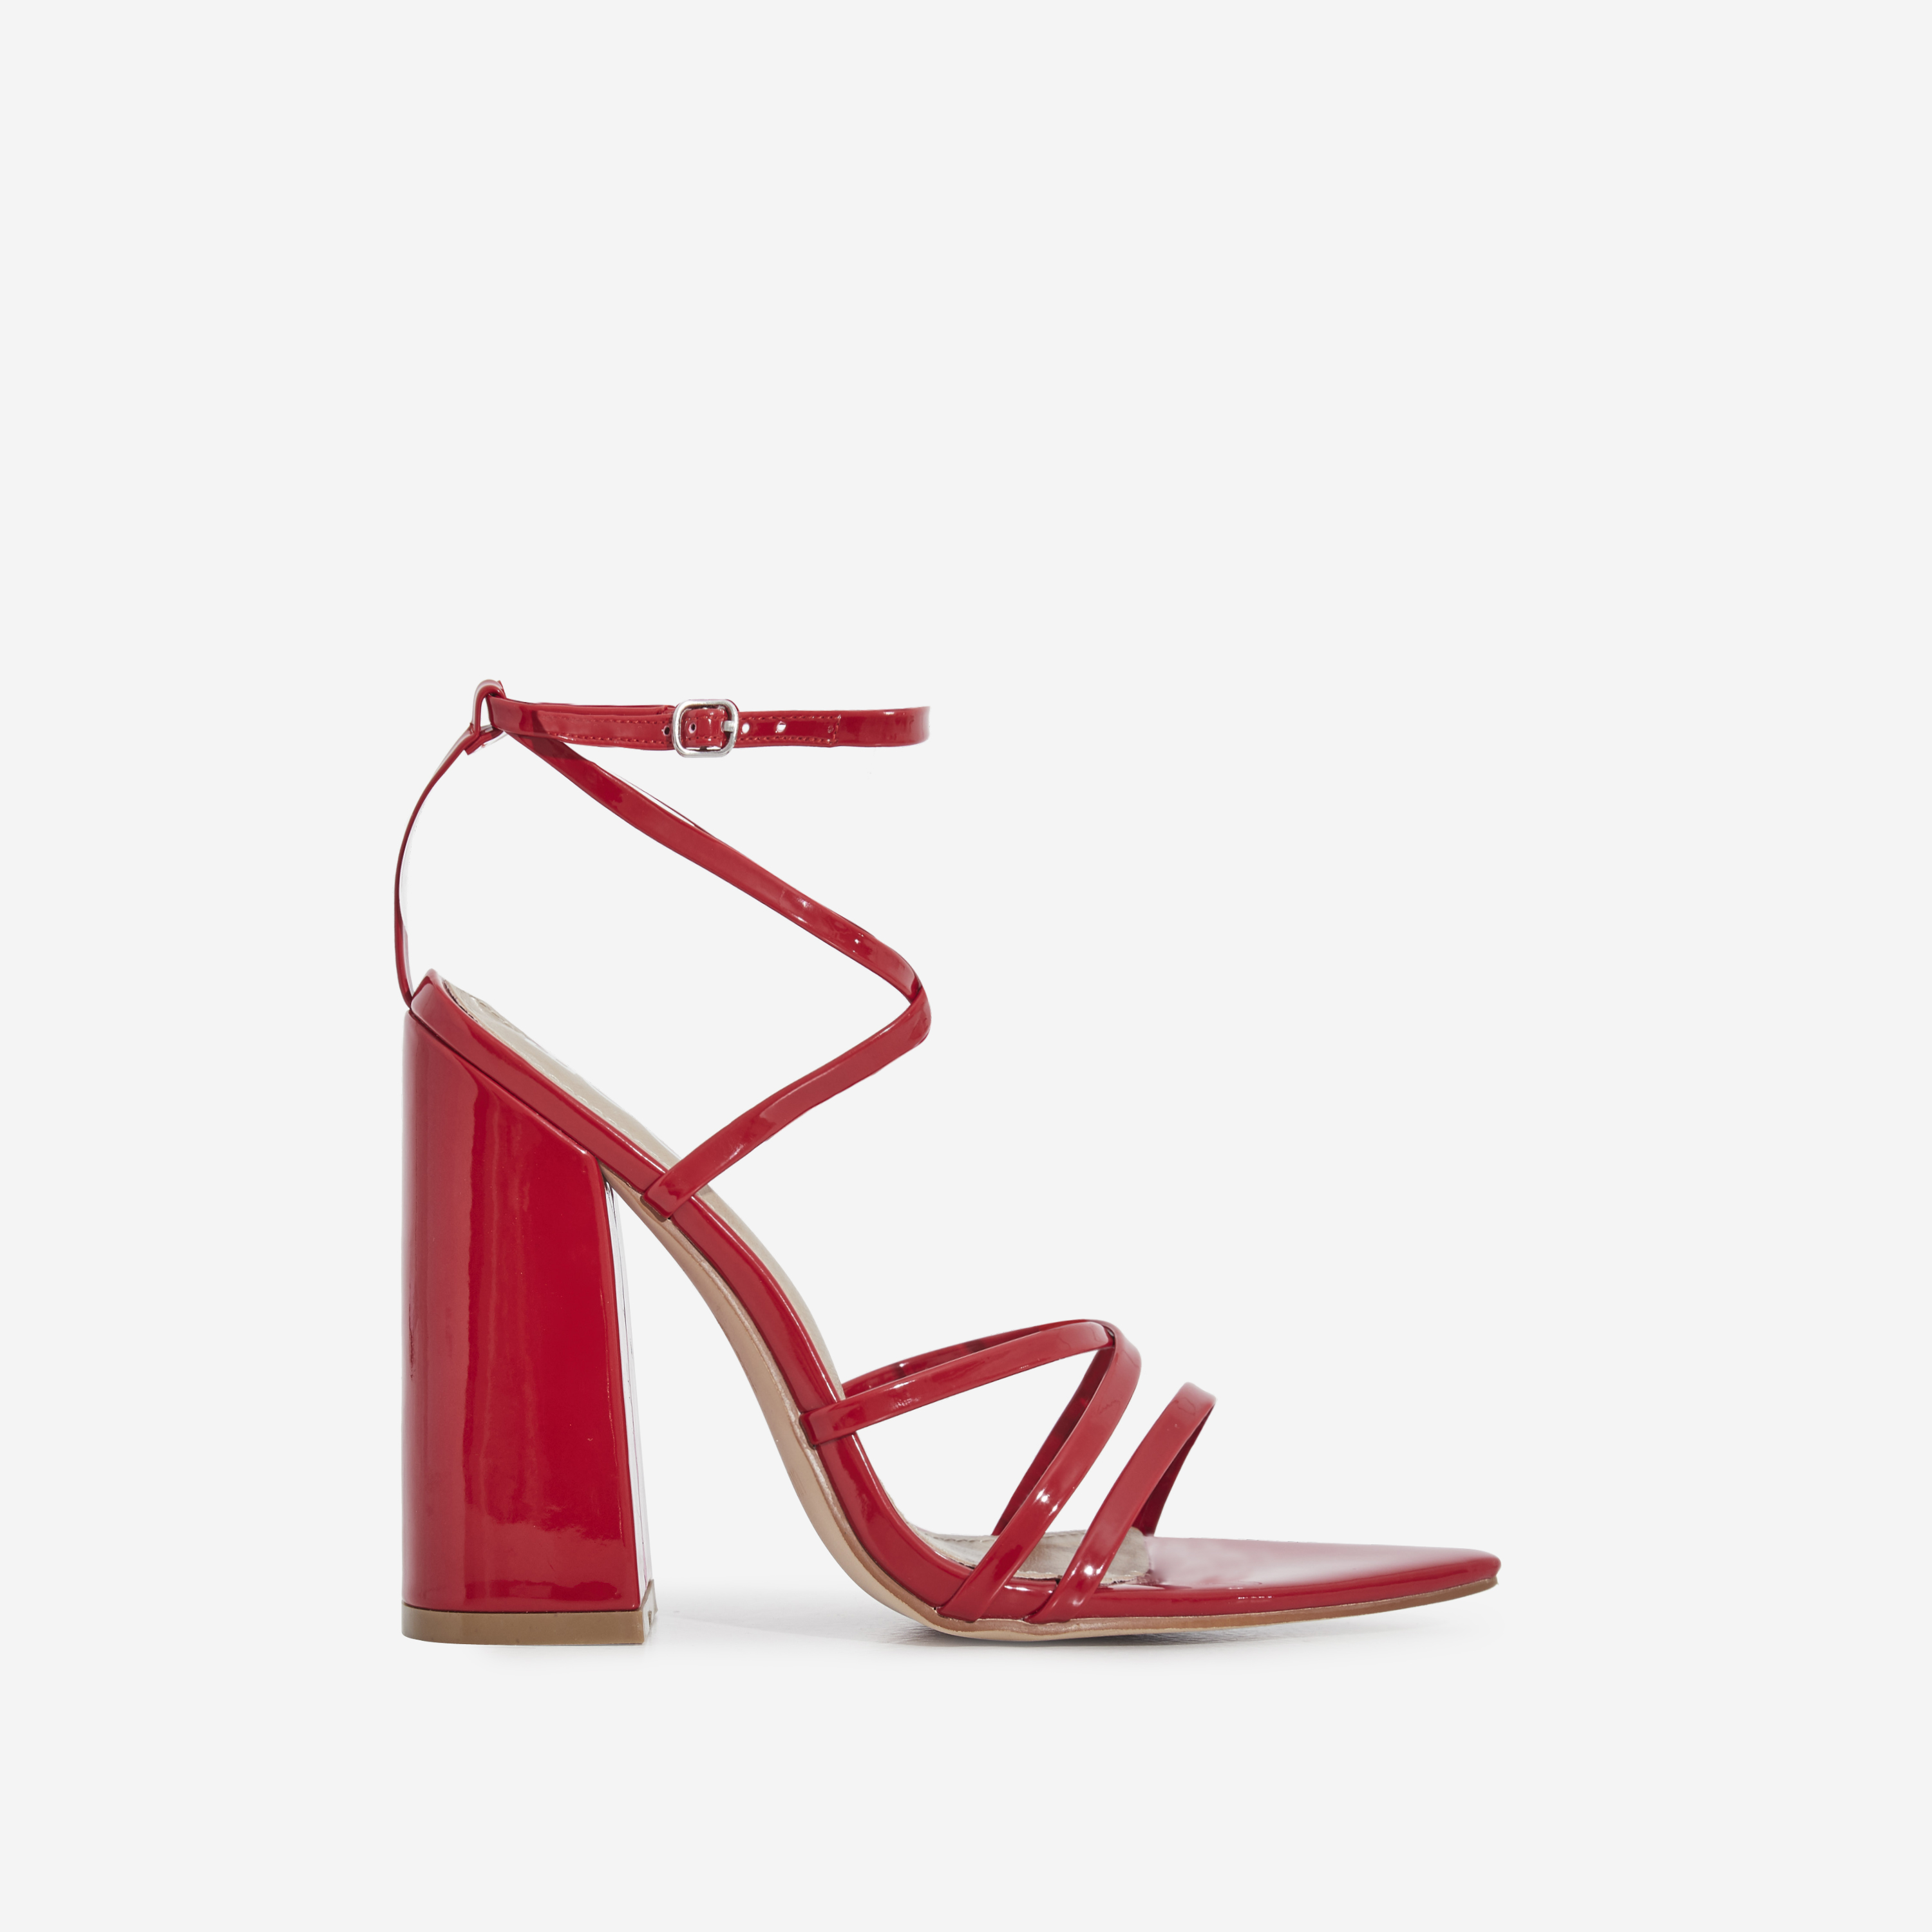 Halo Pointed Toe Block Heel In Red Patent